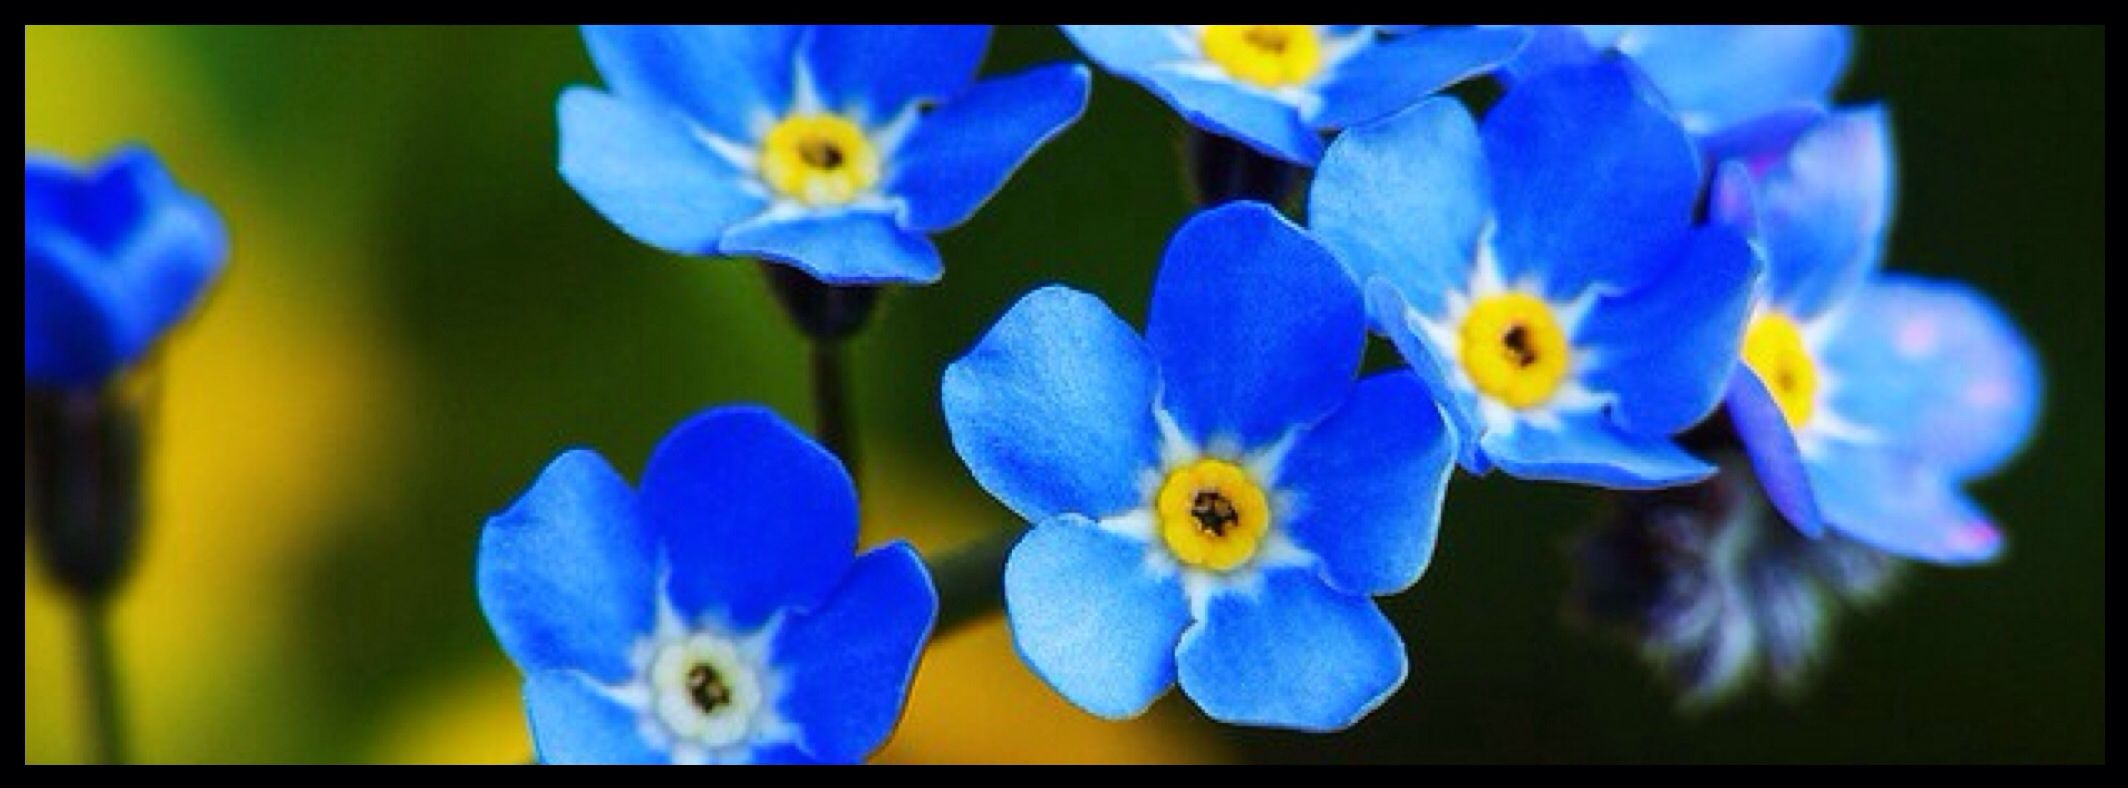 Pin By Amber Heath On Simple Facebook Cover Photos Types Of Blue Flowers Flower Seeds Forget Me Nots Flowers